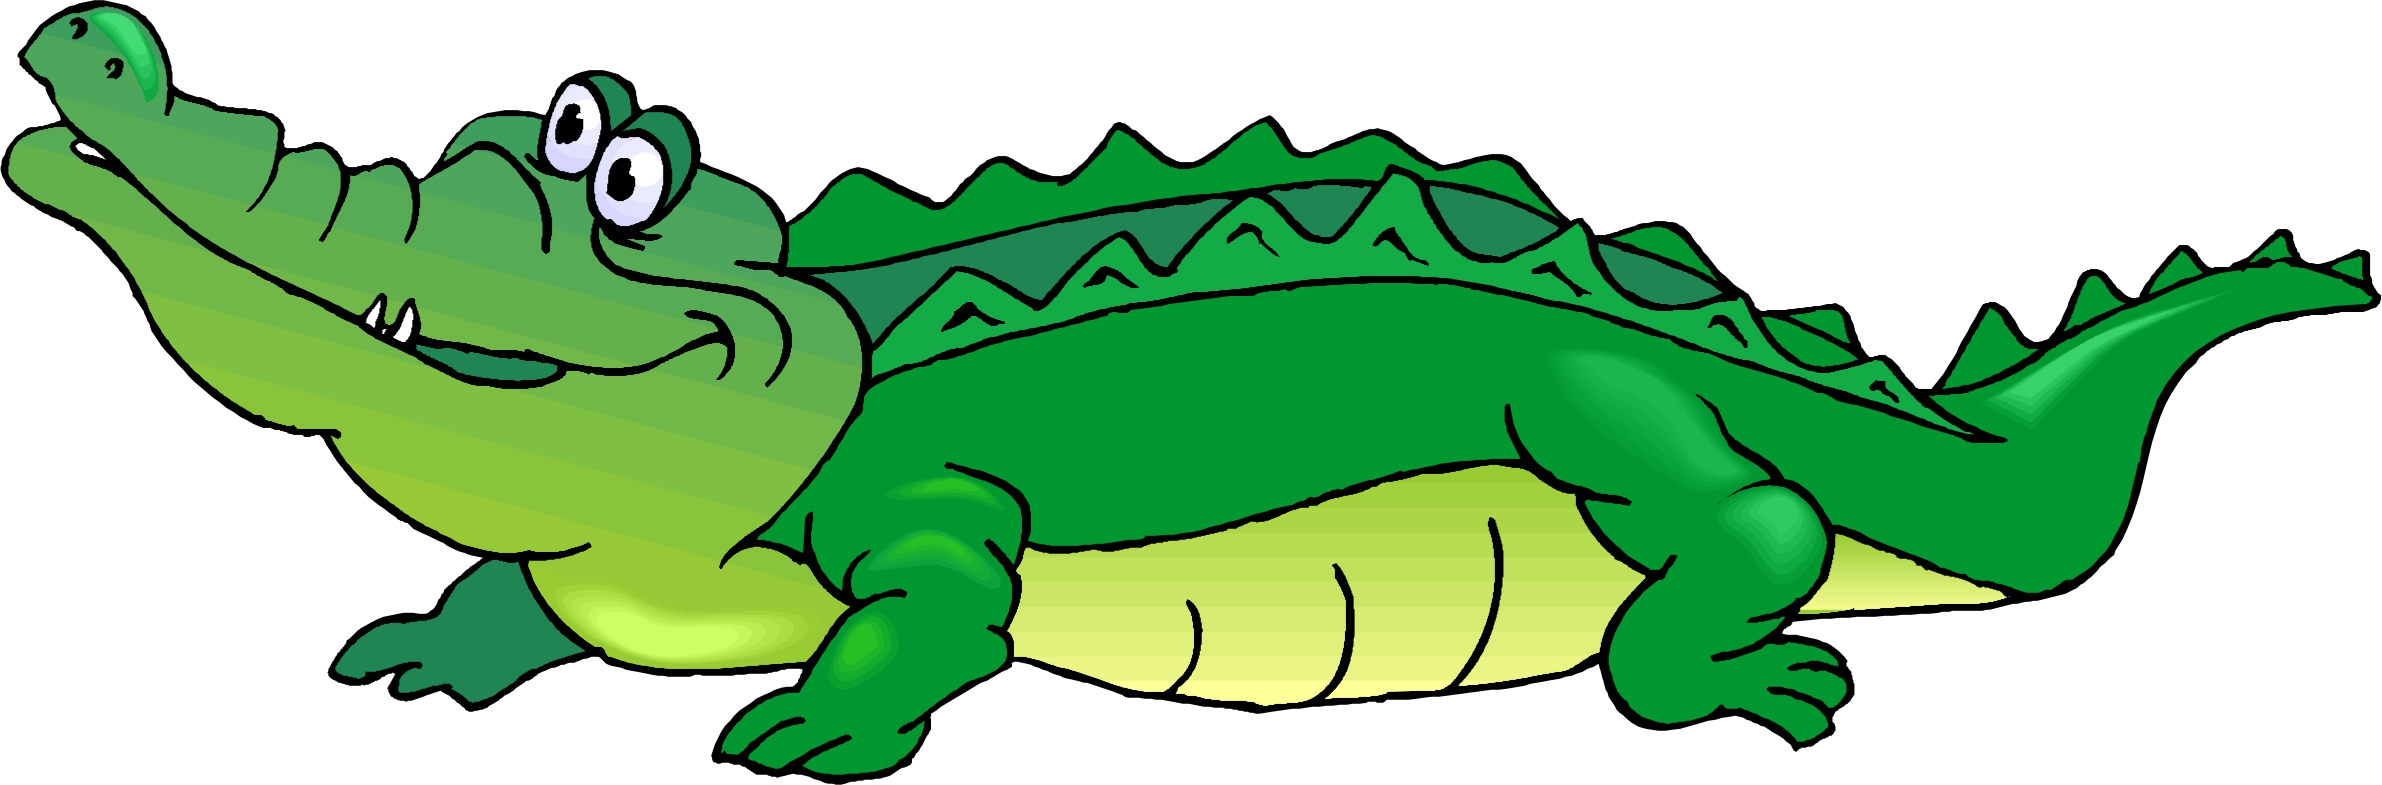 cute%20baby%20alligator%20clipart